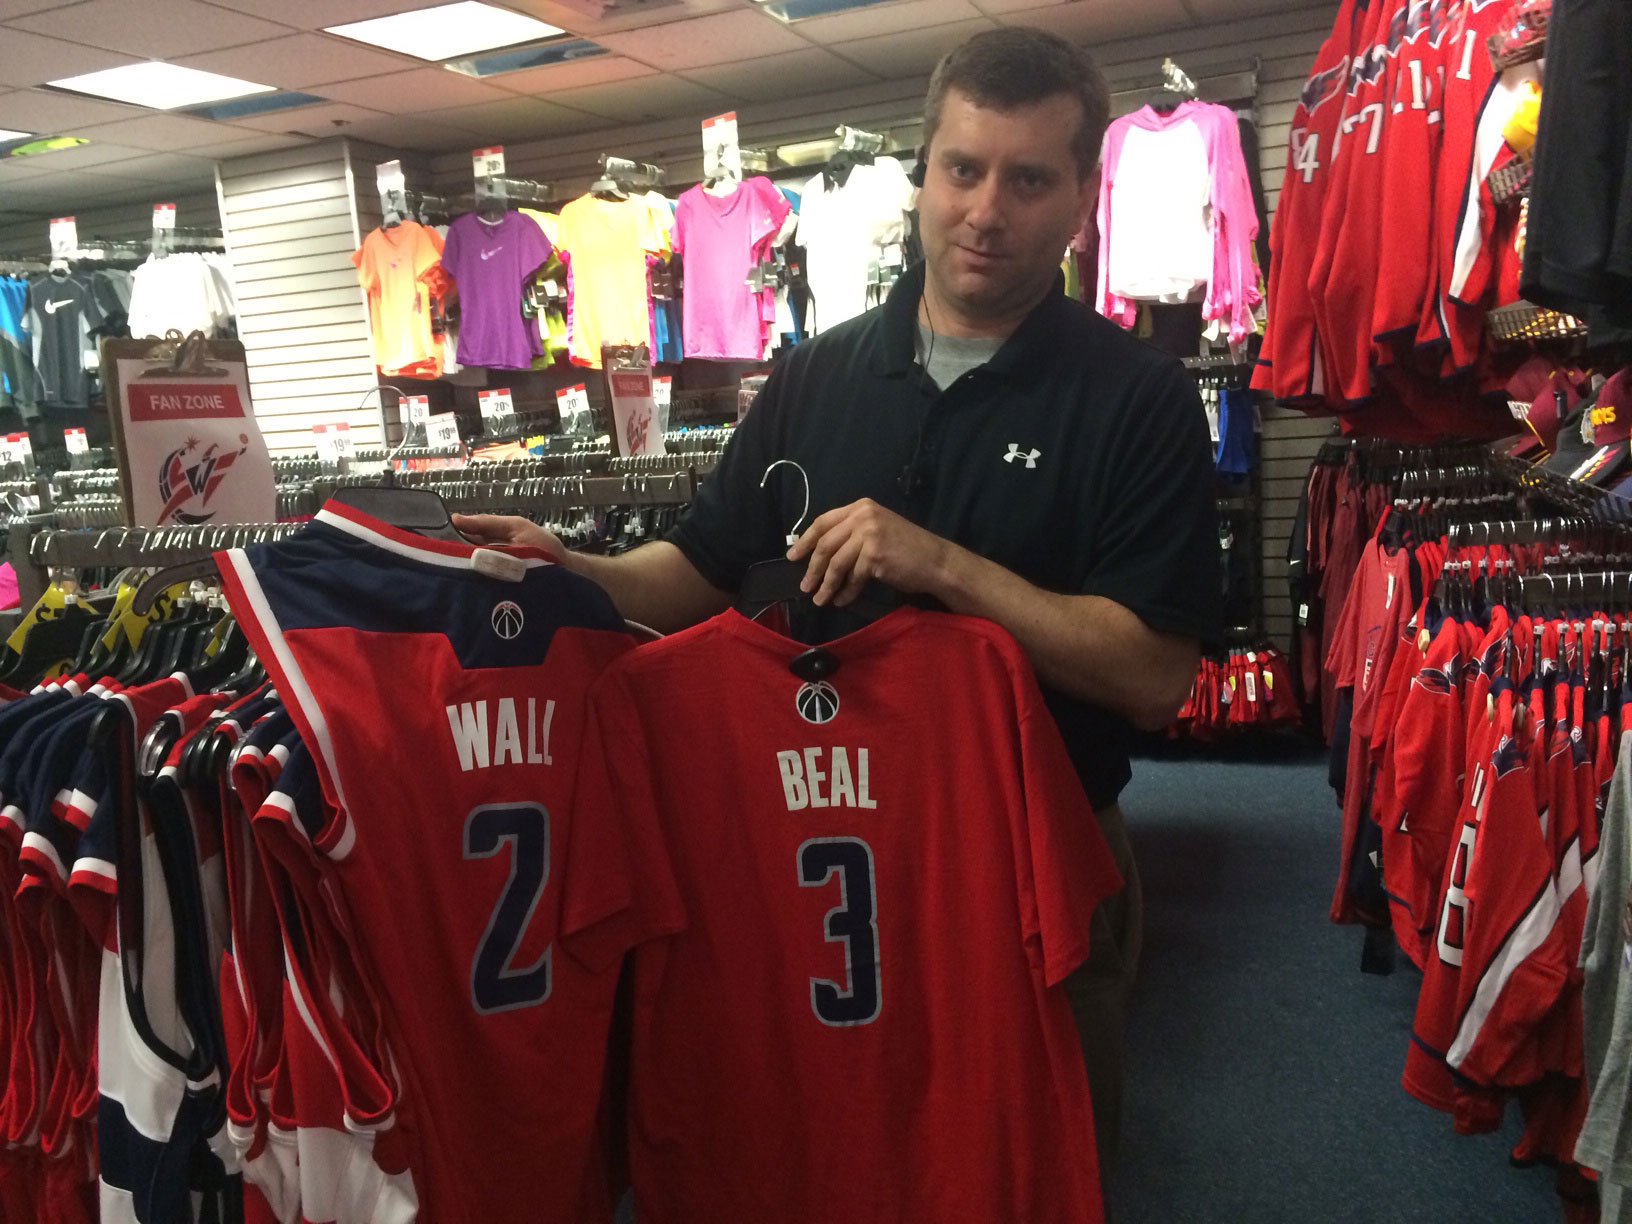 Sports gear stores cash in on Wizards' success